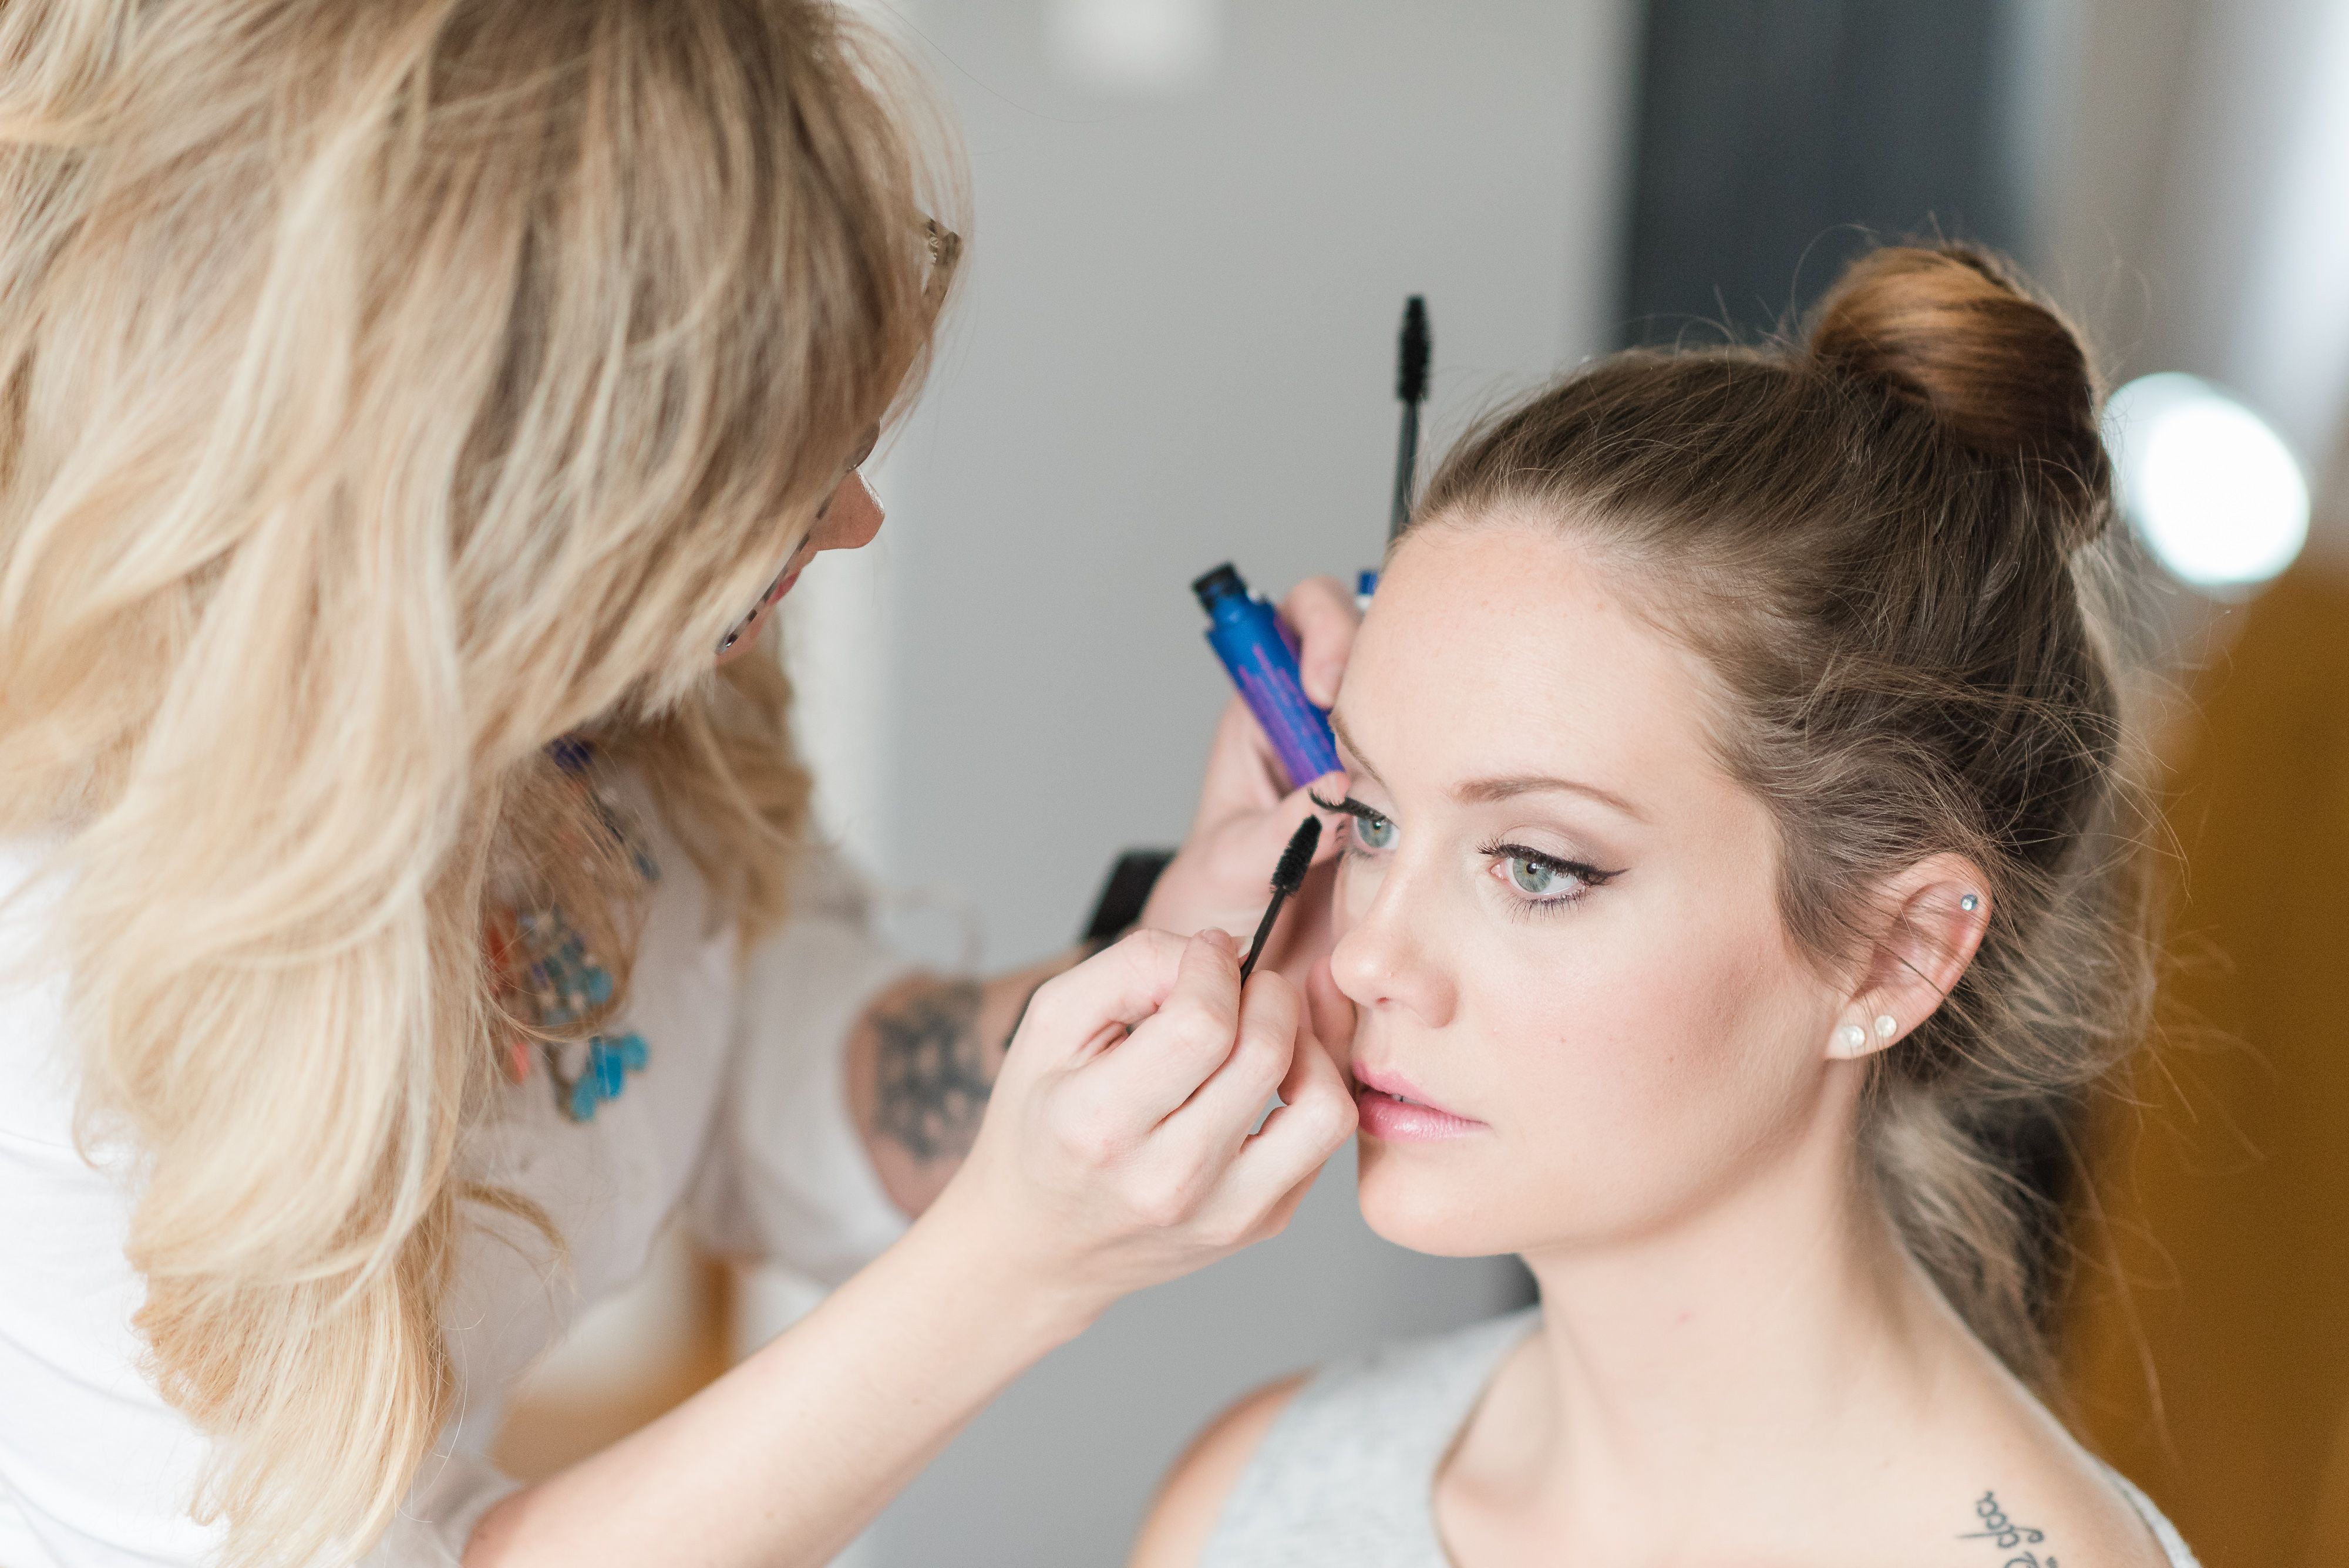 Ottawa Makeup Artist Artistry By Jacquie Makeup Artist Near Me Makeup Artist Makeup